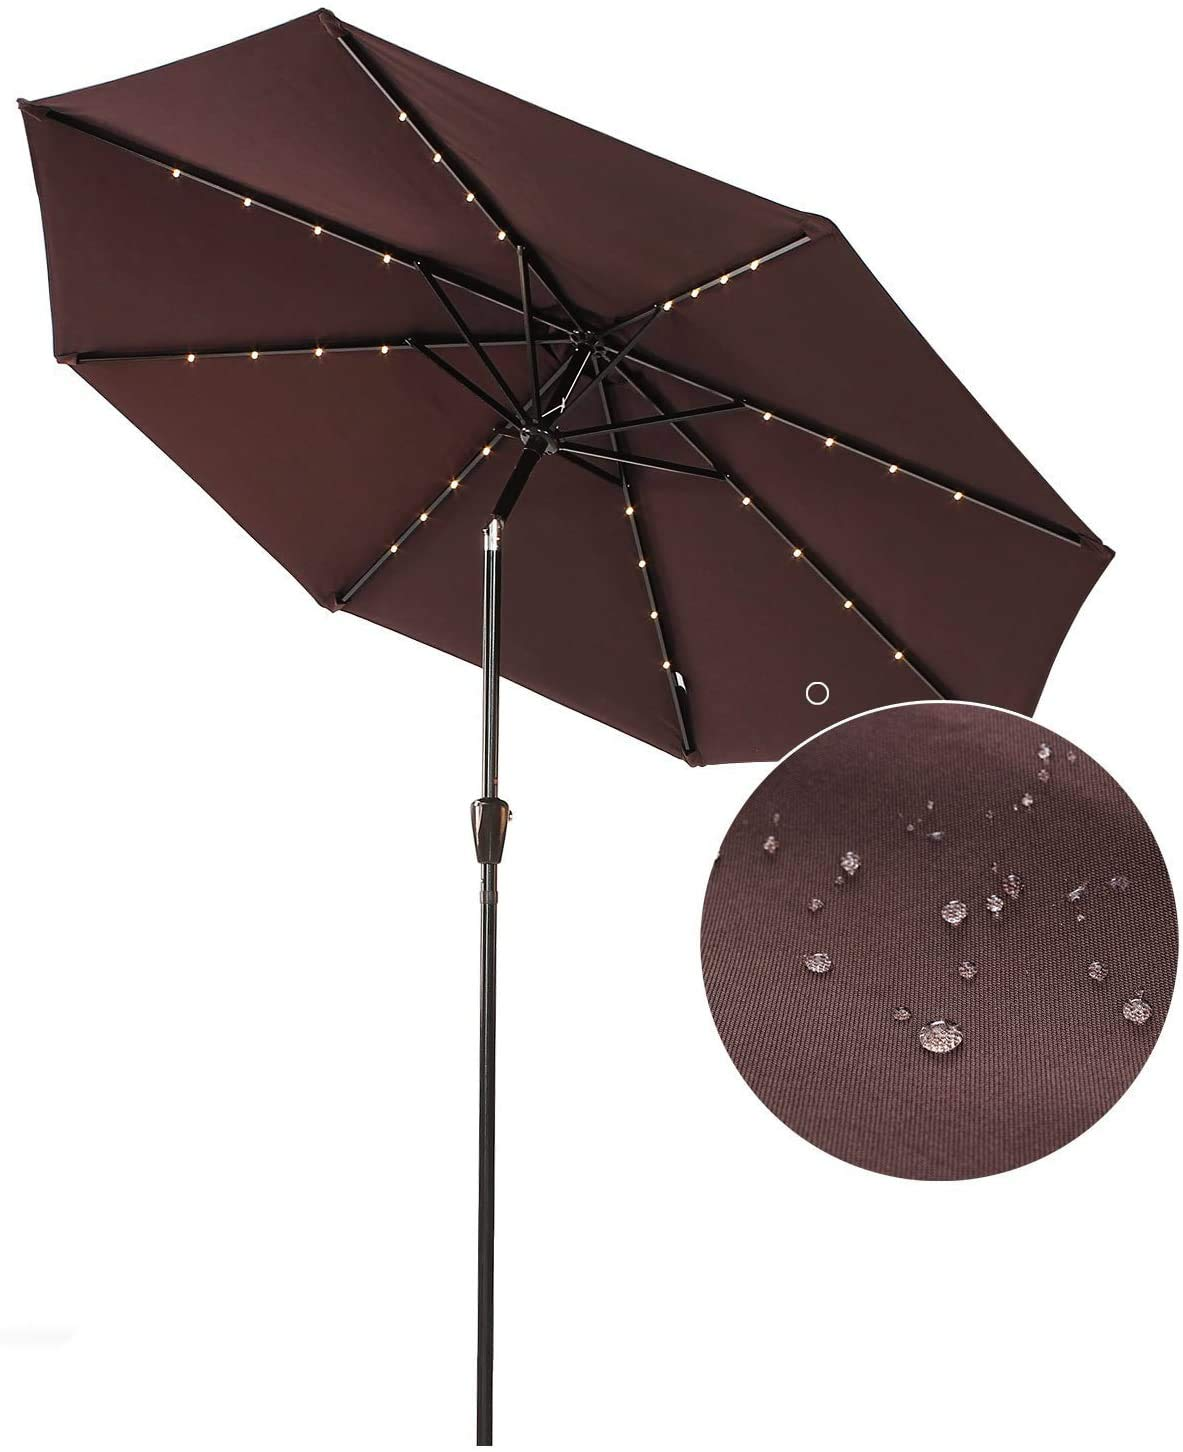 Cobana Solar Umbrella